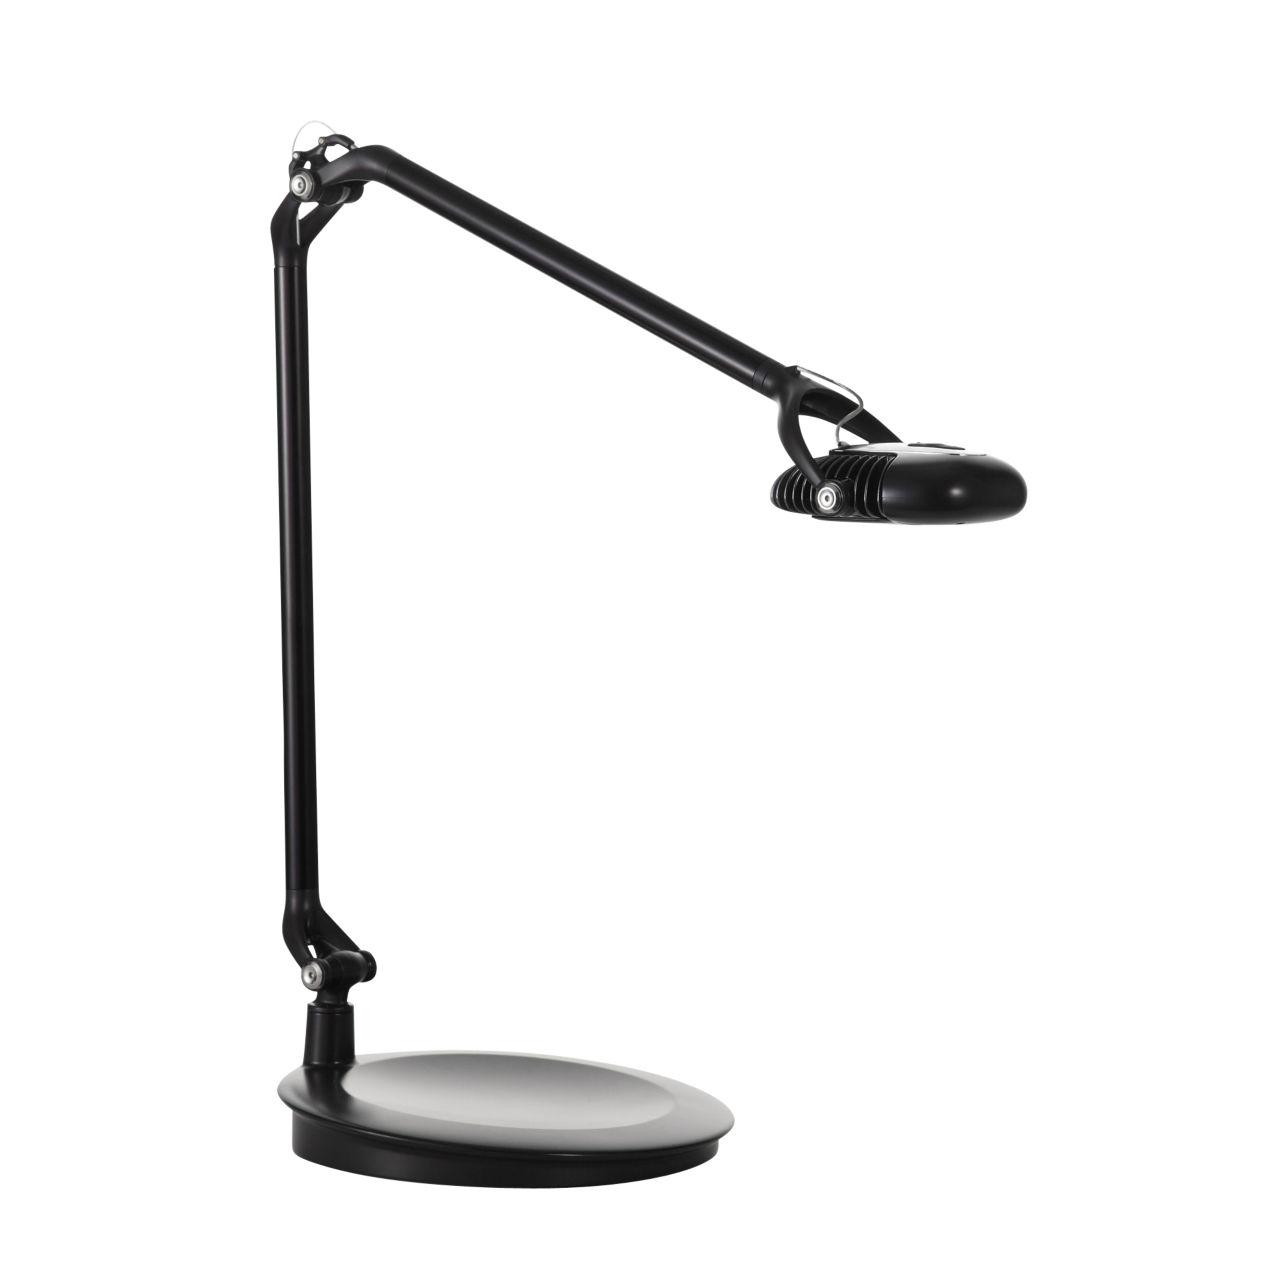 Element 790 LED Light in Black by Humanscale